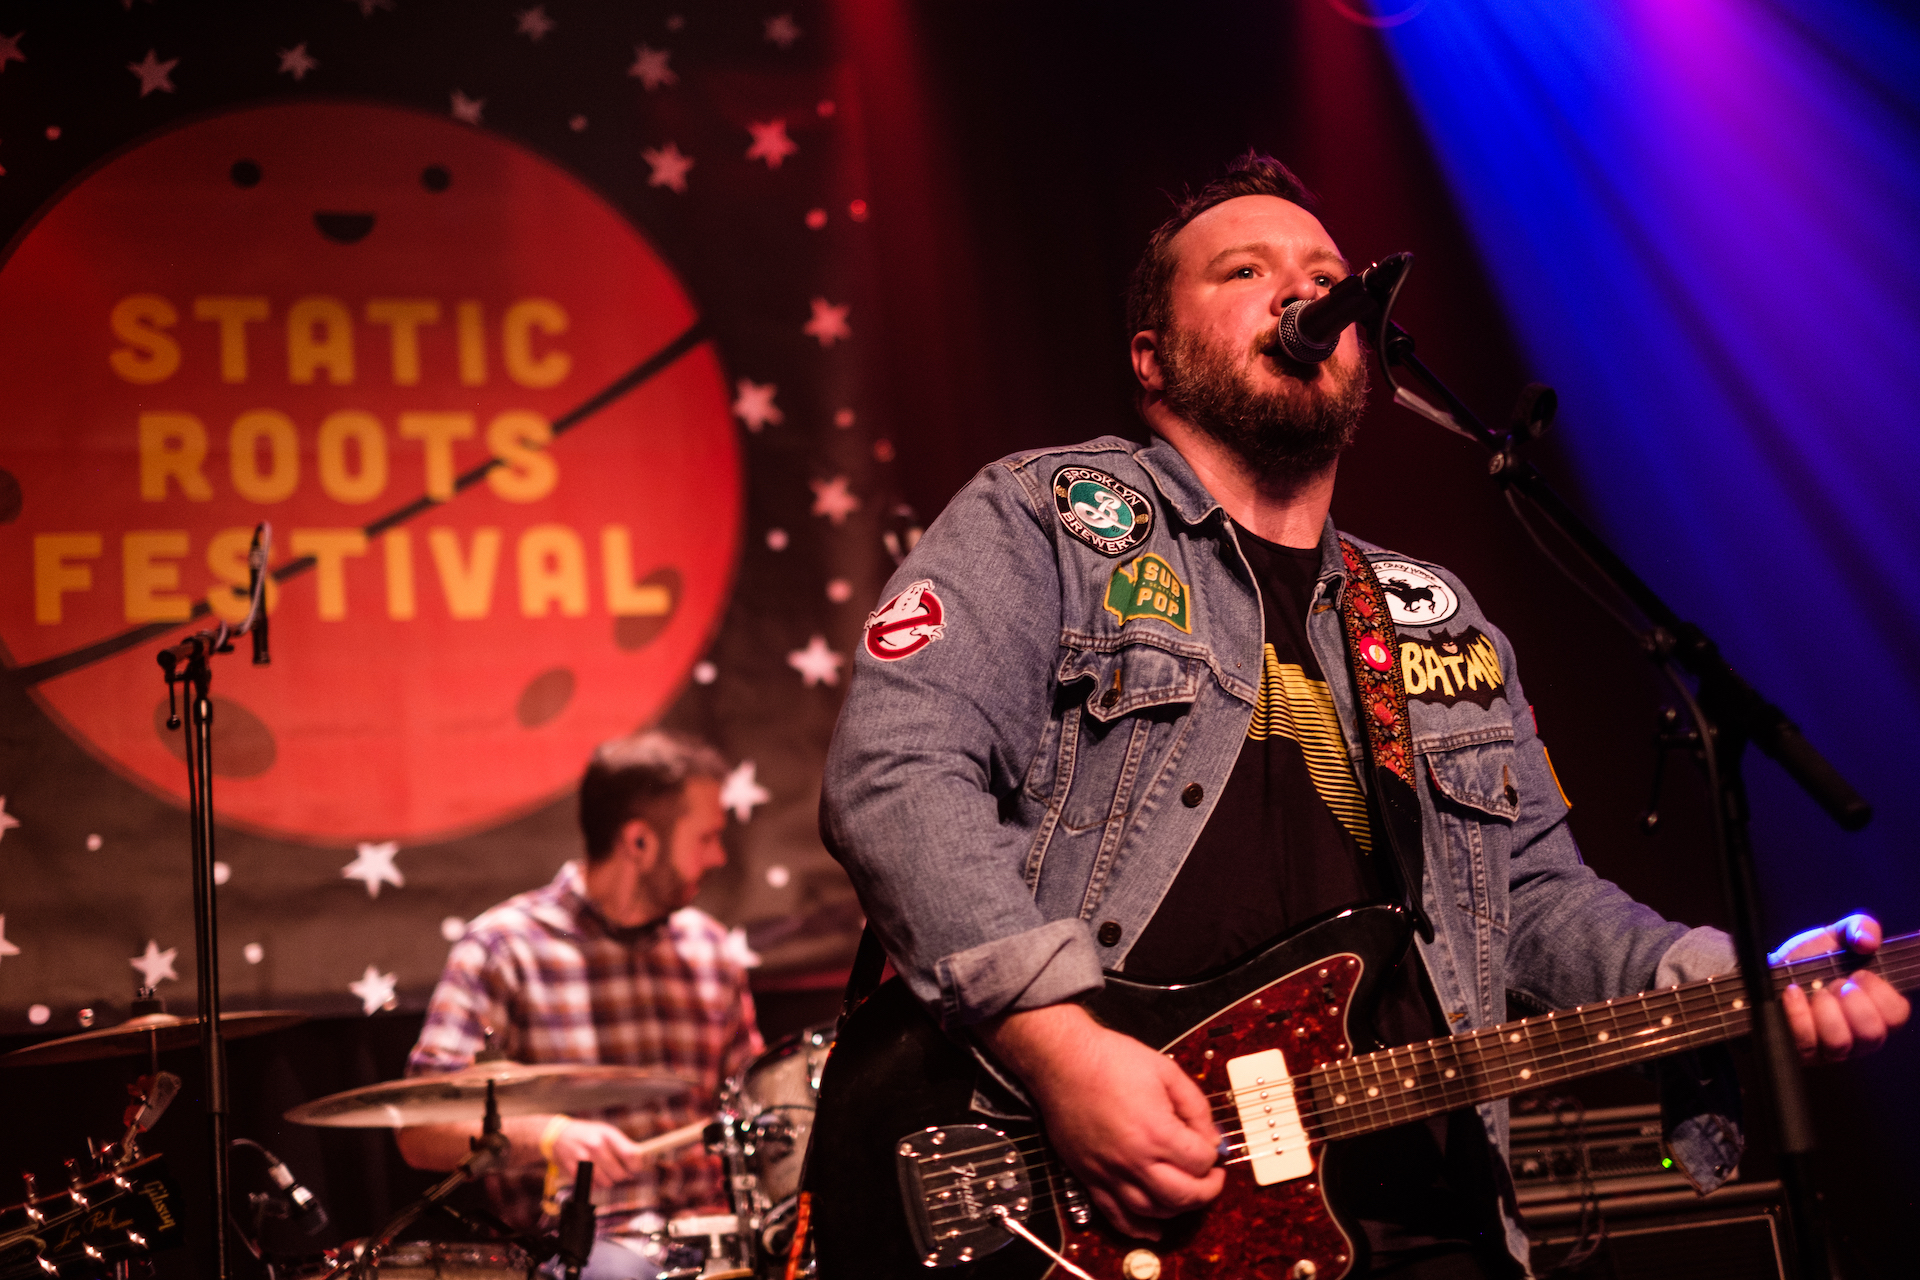 Luke Tuchscherer & The Penny Dreadfuls @ Static Roots Festival 2019